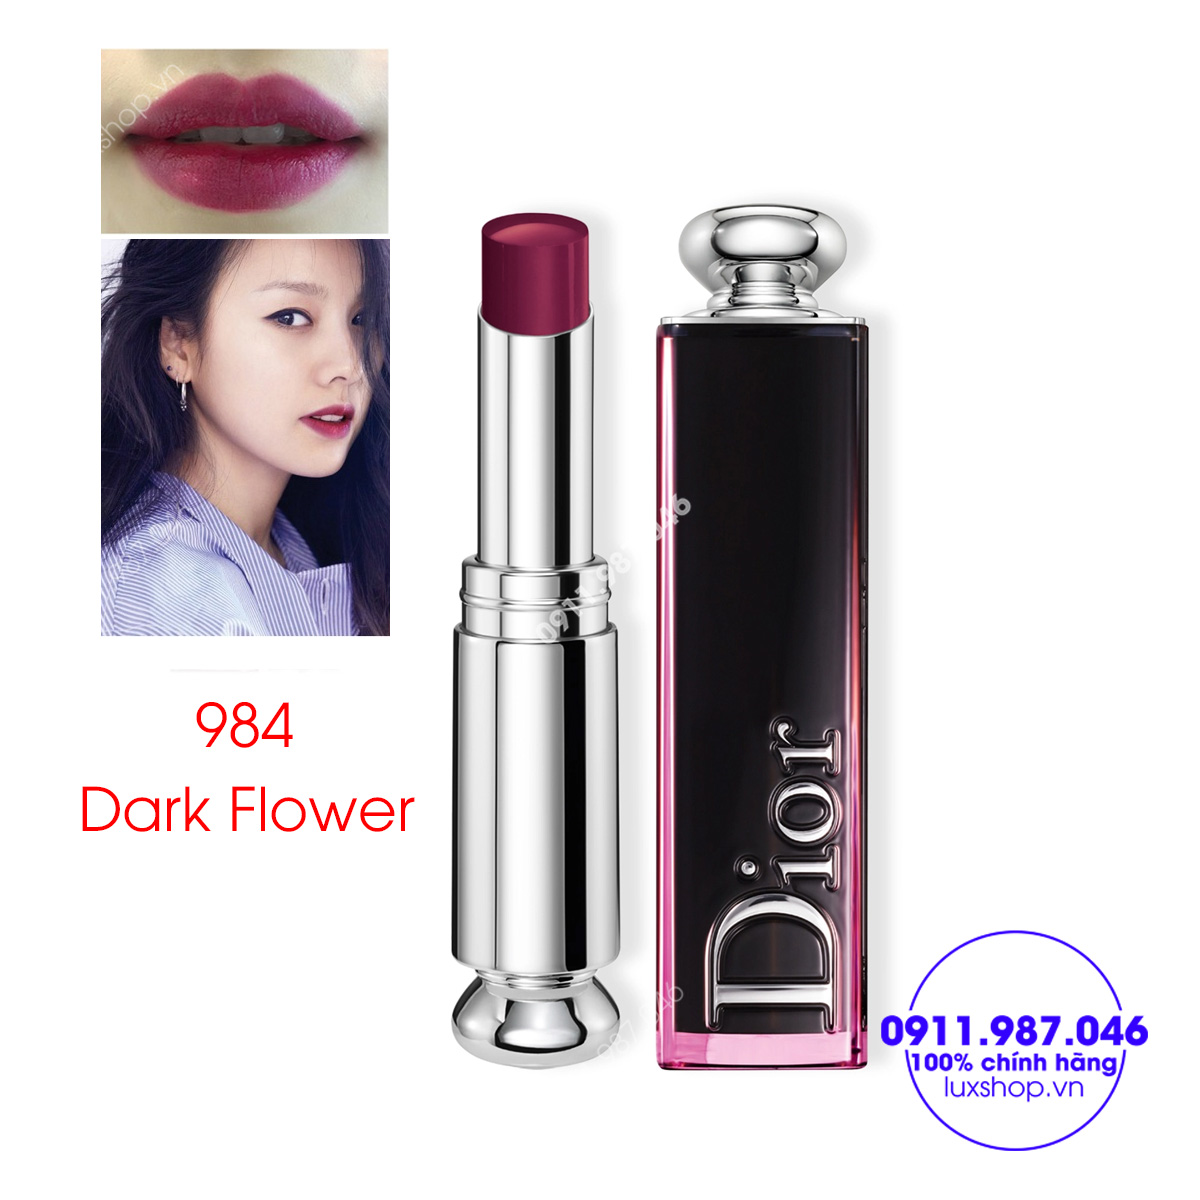 son-duong-dior-984-dark-flower-do-man-chinh-hang-phap